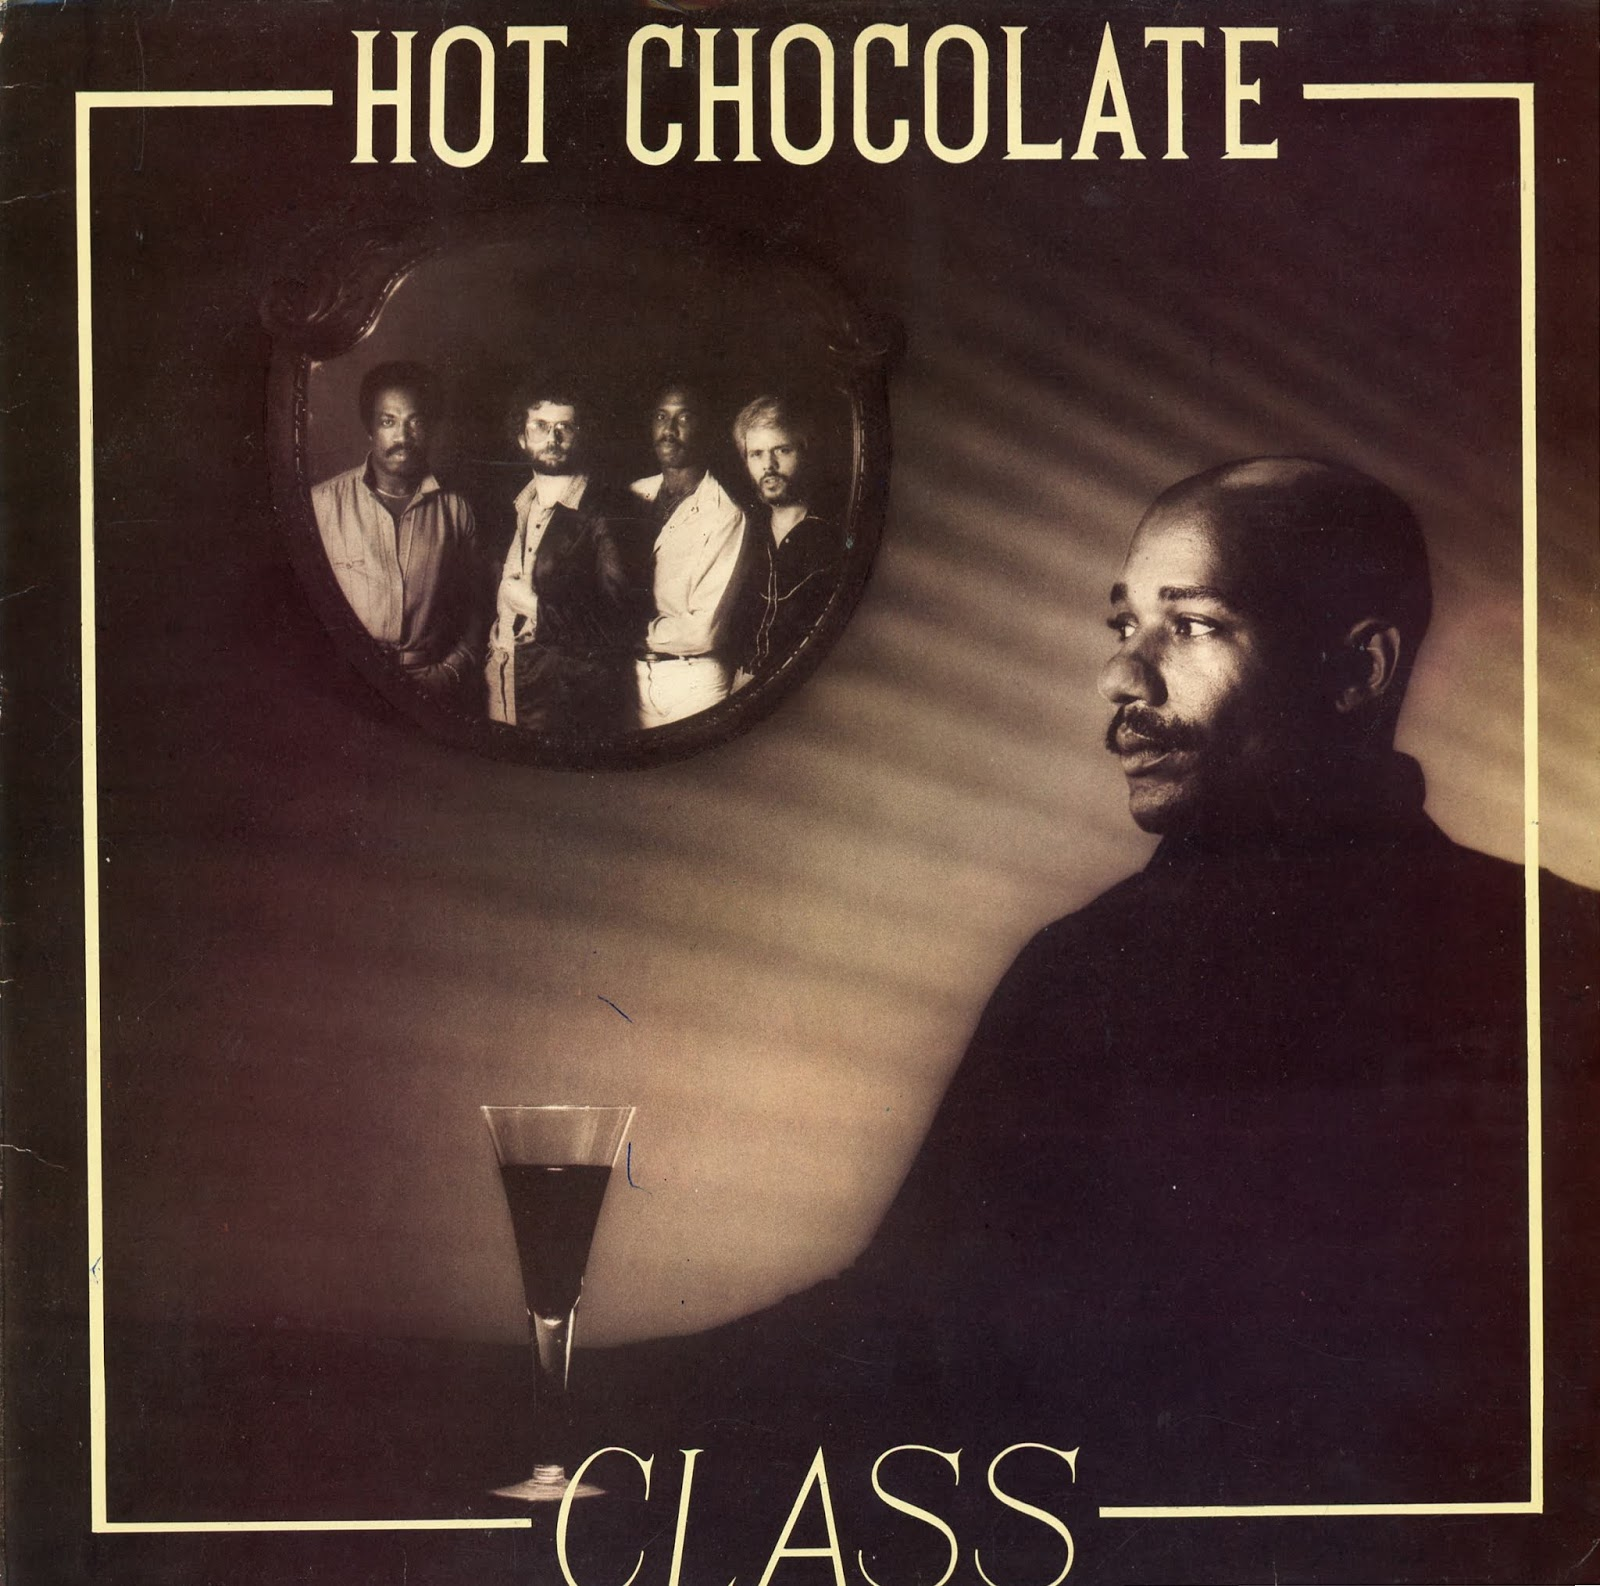 Hot Chocolate Are A British Soul Band Popular During The